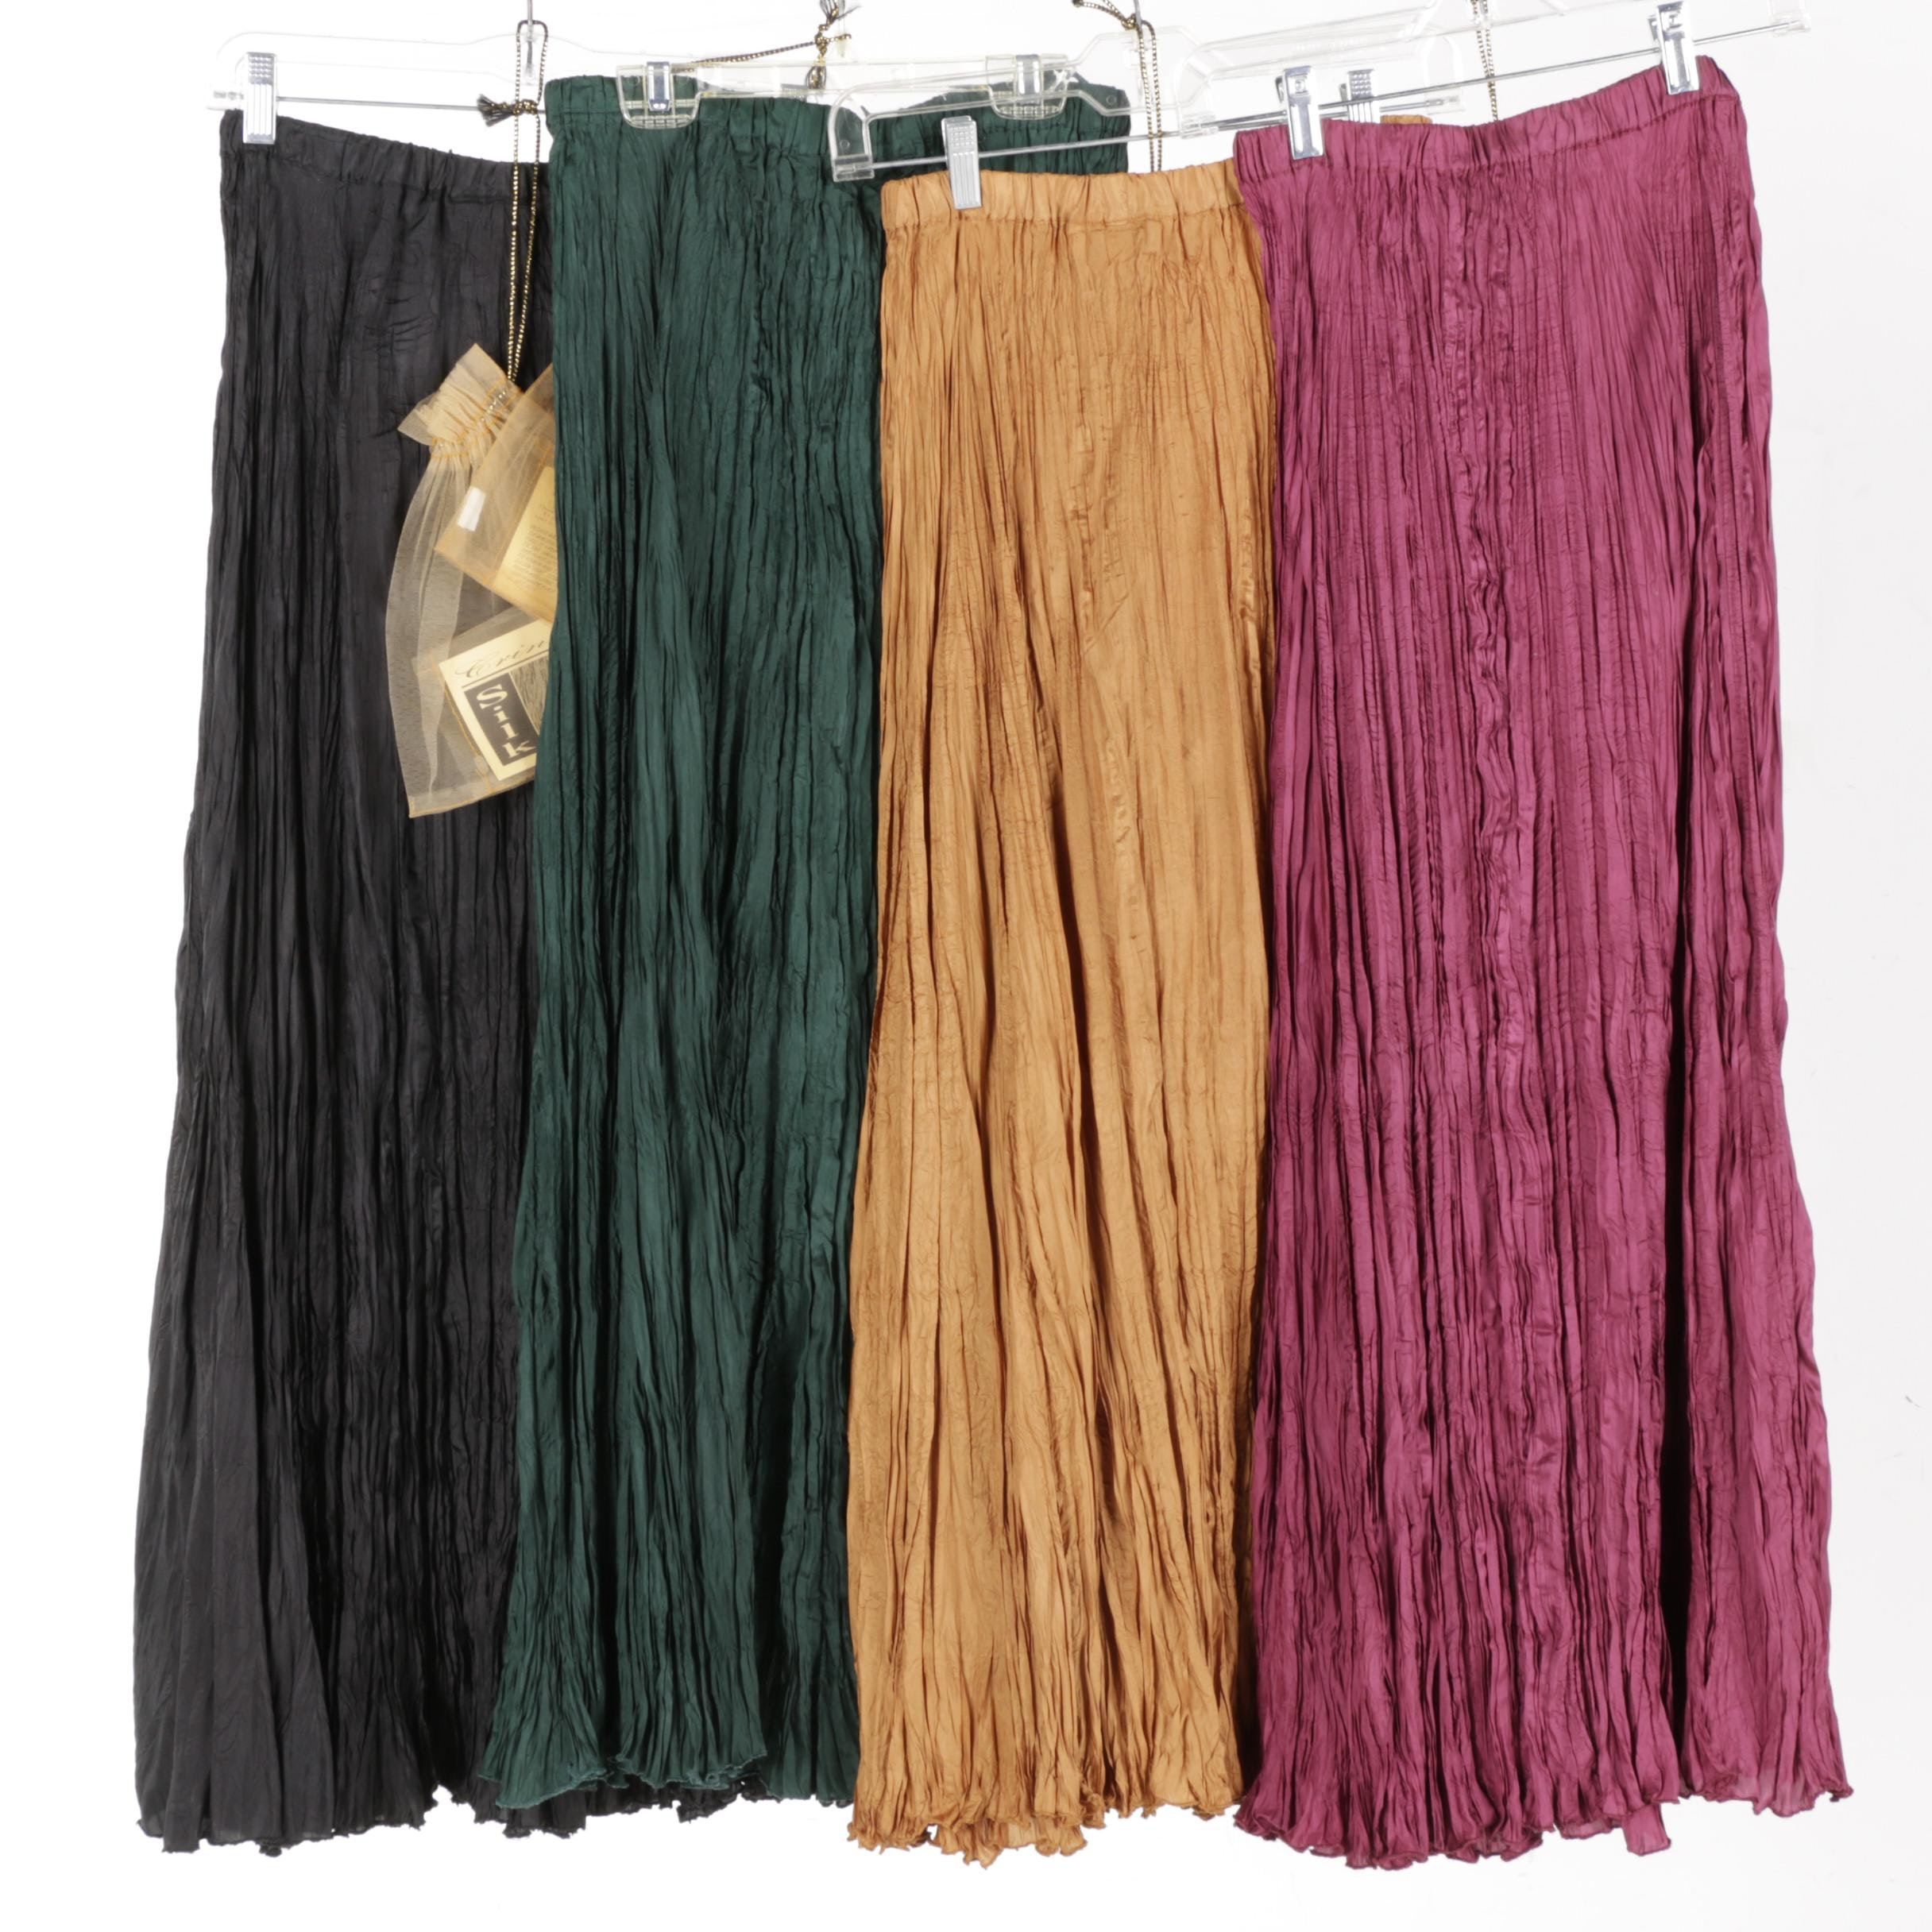 Women's Fashion Edition Crinkle Silk Skirts